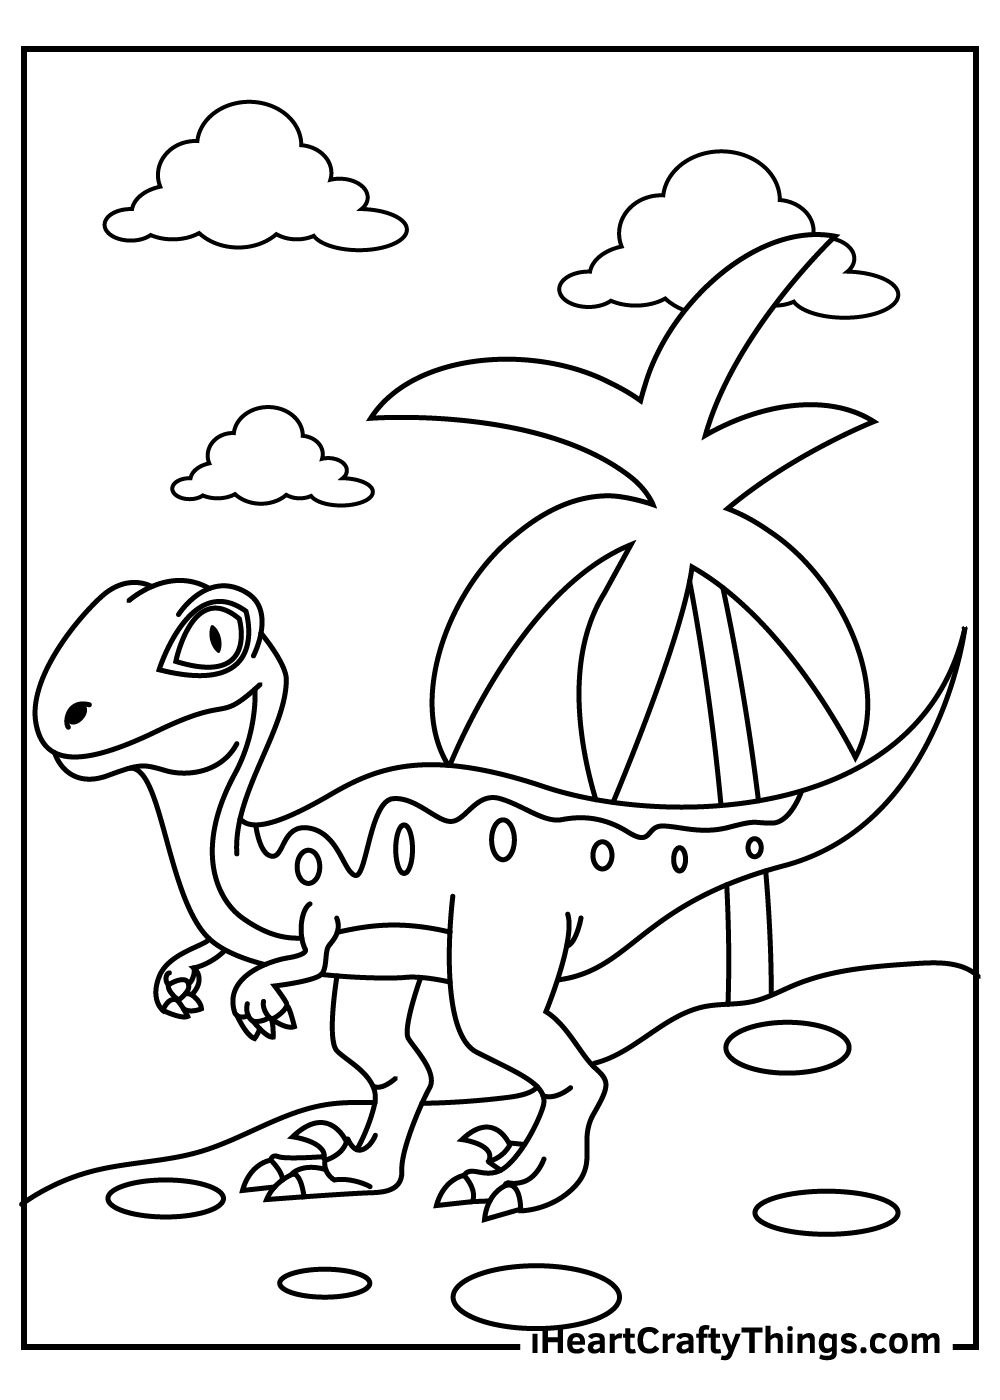 jurassic world velociraptor coloring pages